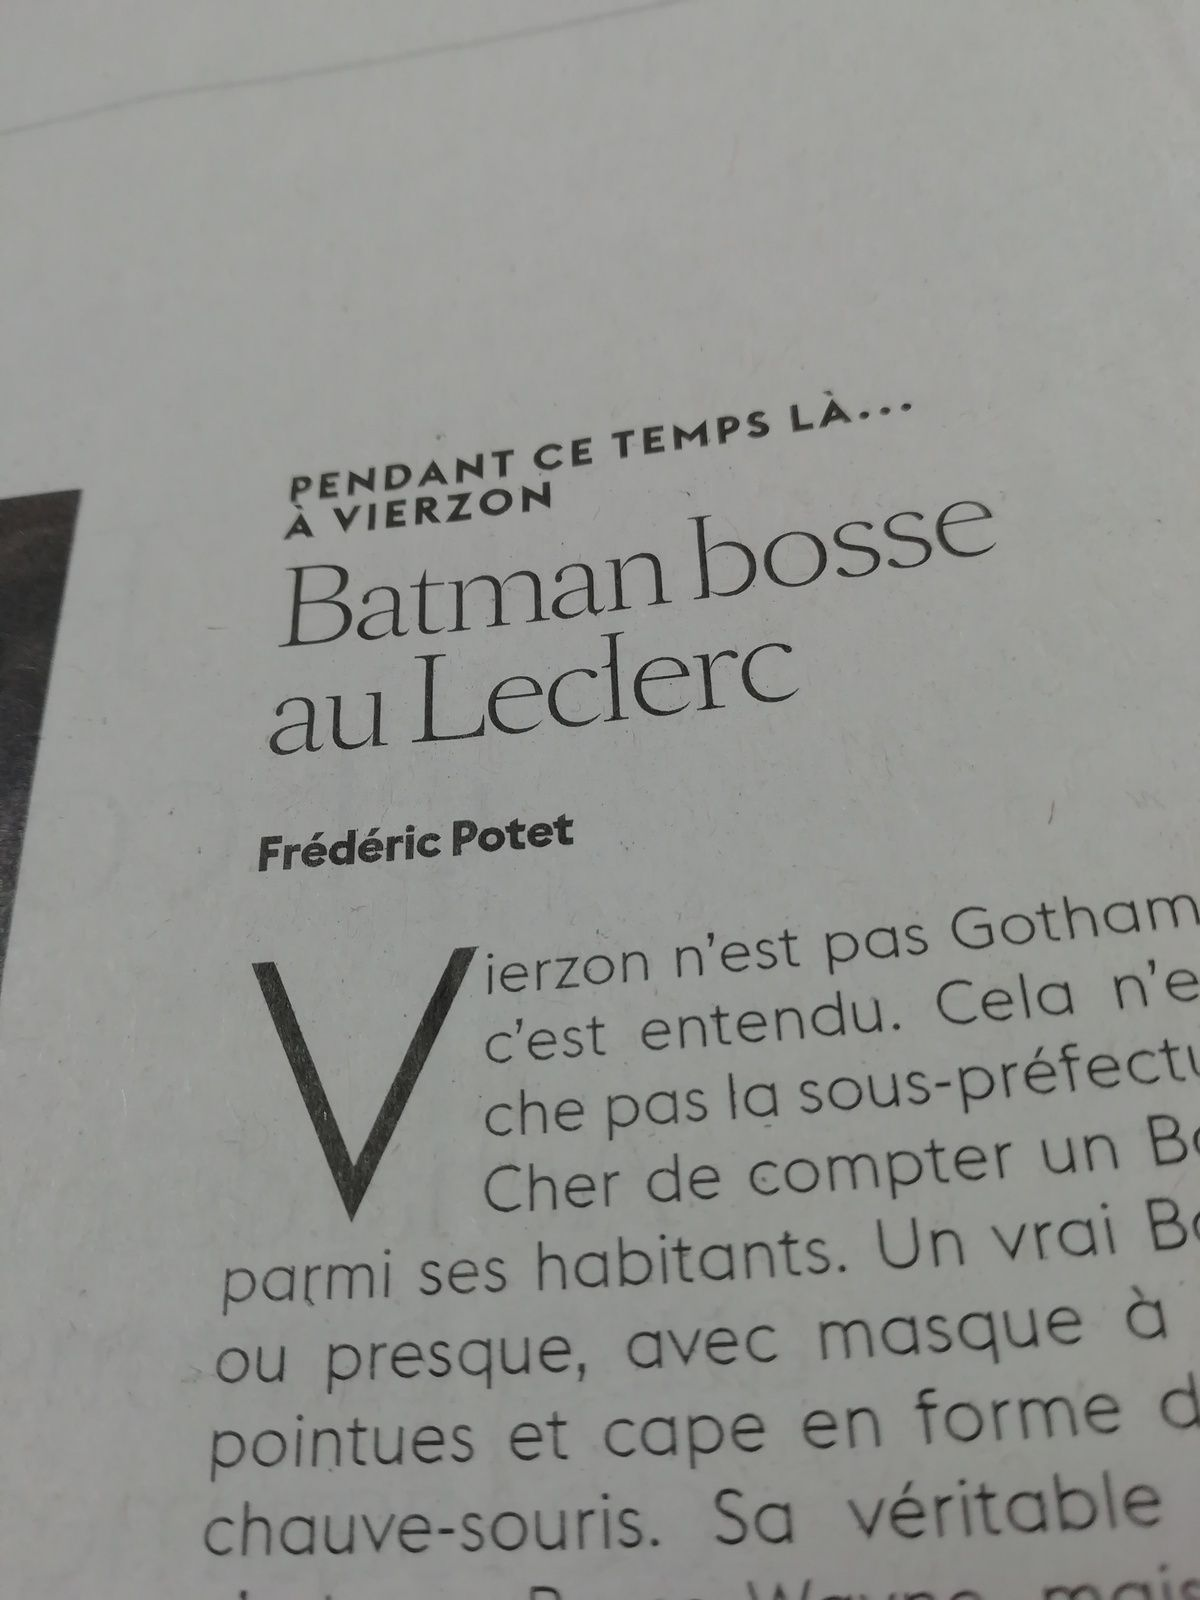 T'as voulu voir Vierzon et tu as vu Batman !